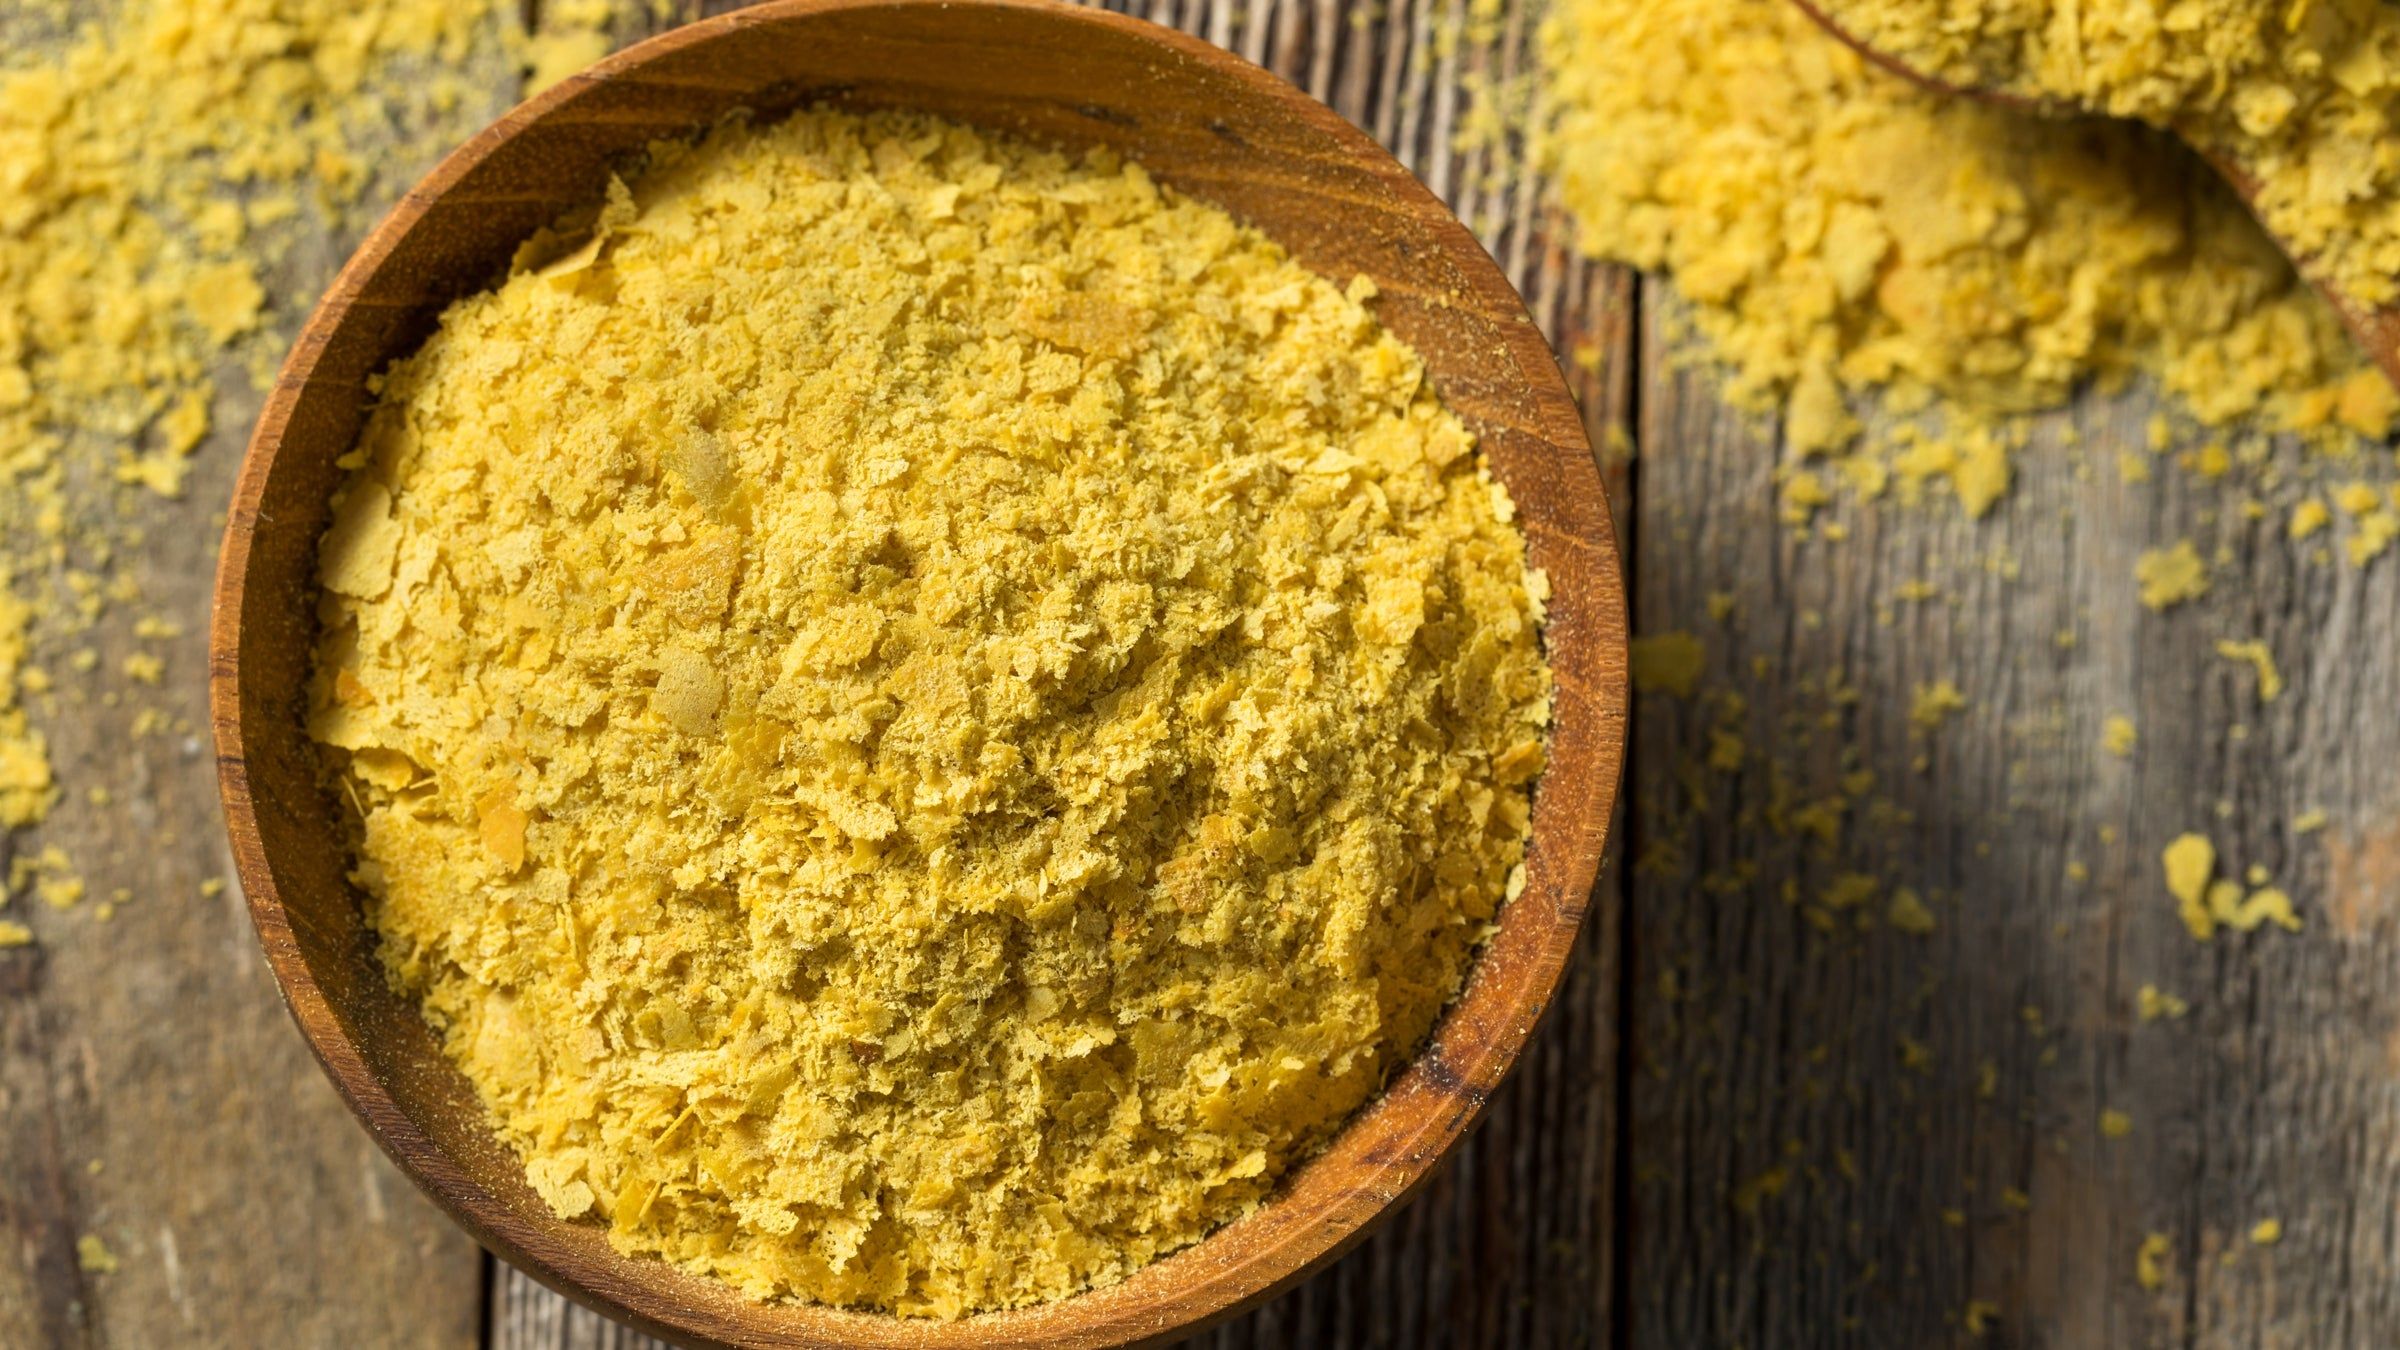 Why Nutritional Yeast Should Be a Staple in Your Kitchen